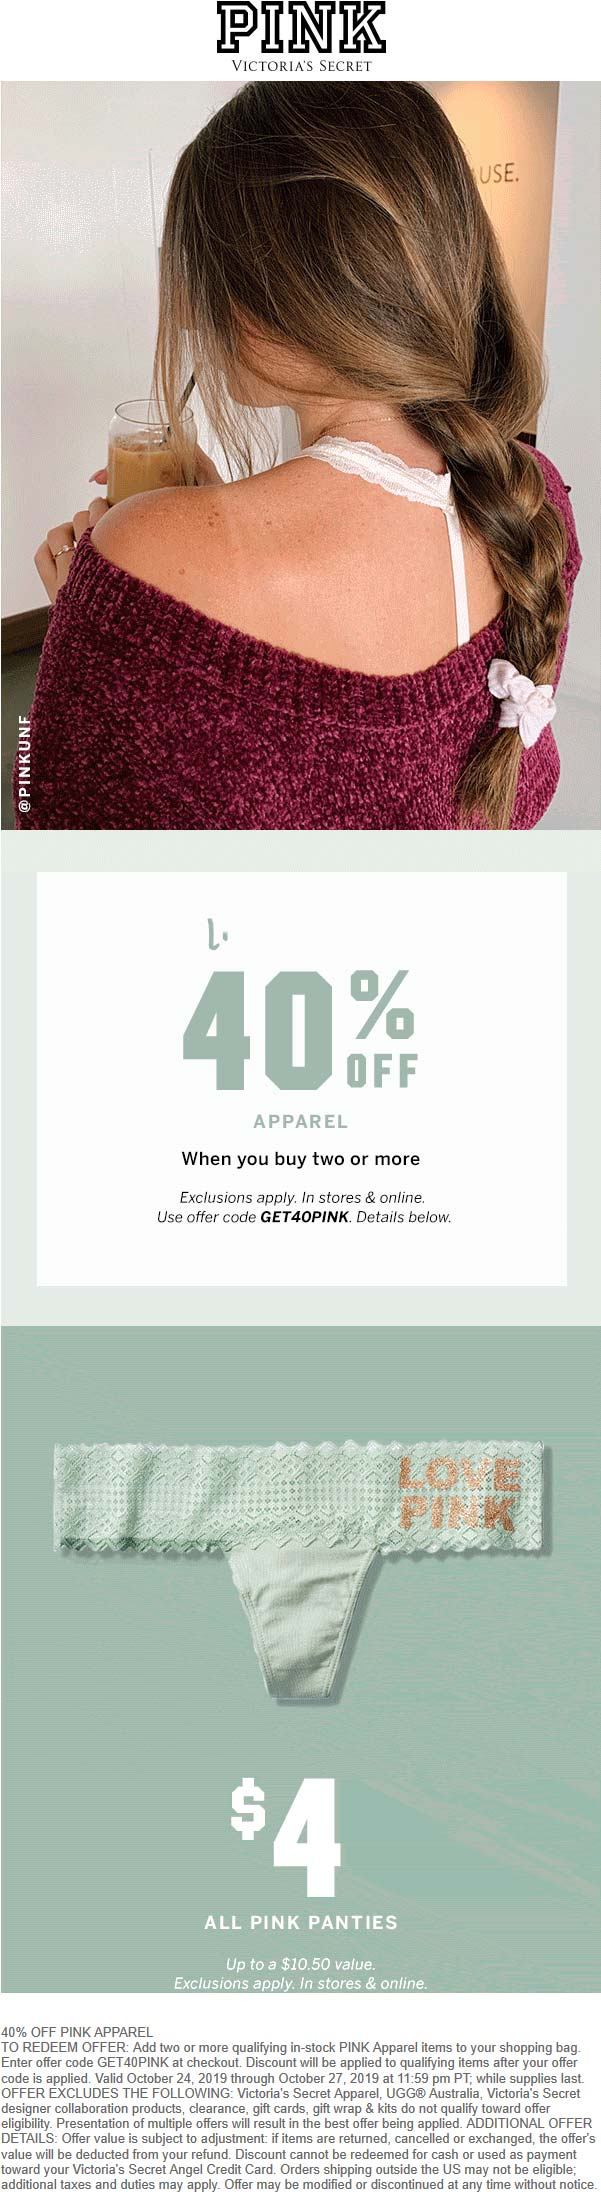 PINK Coupon November 2019 40% off at PINK, or online via promo code GET40PINK